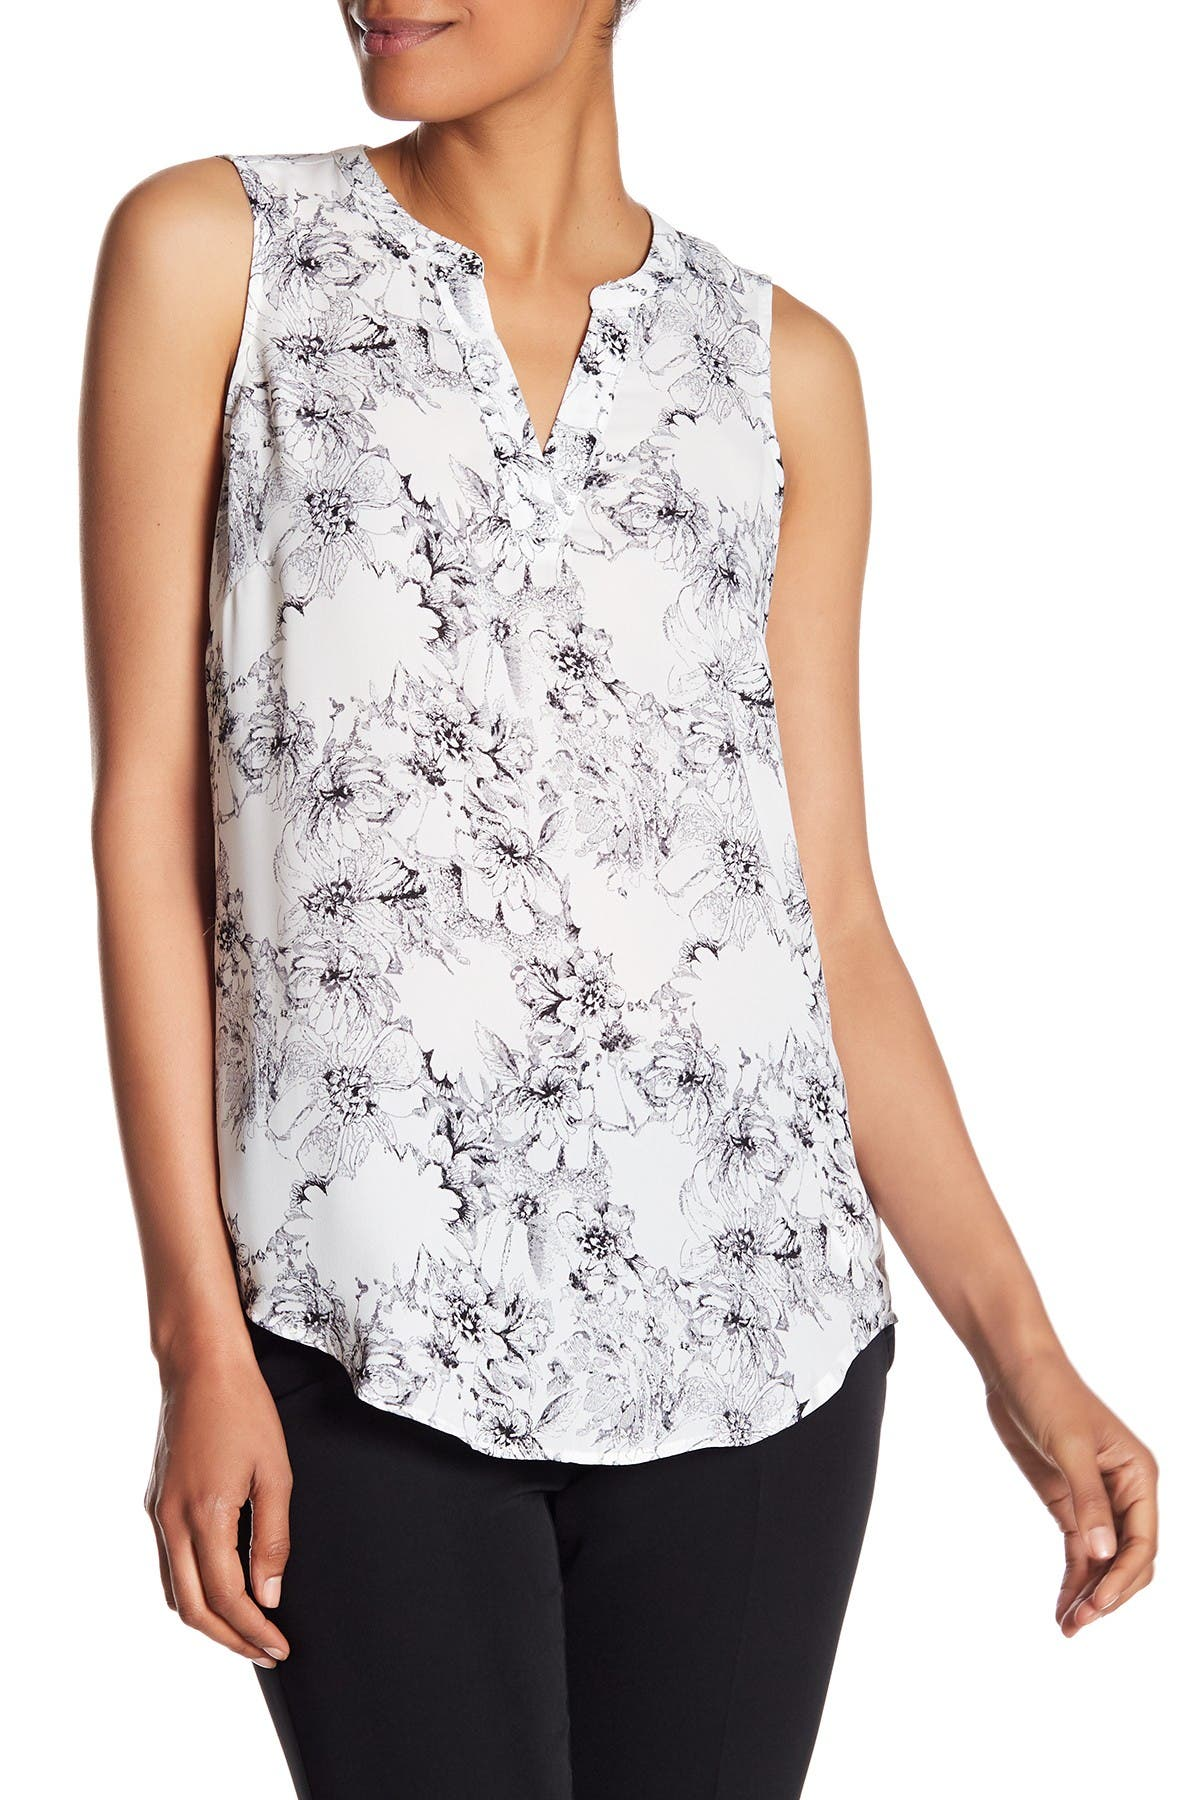 Image of Adrianna Papell Sleeveless Split Neck Crepe Blouse